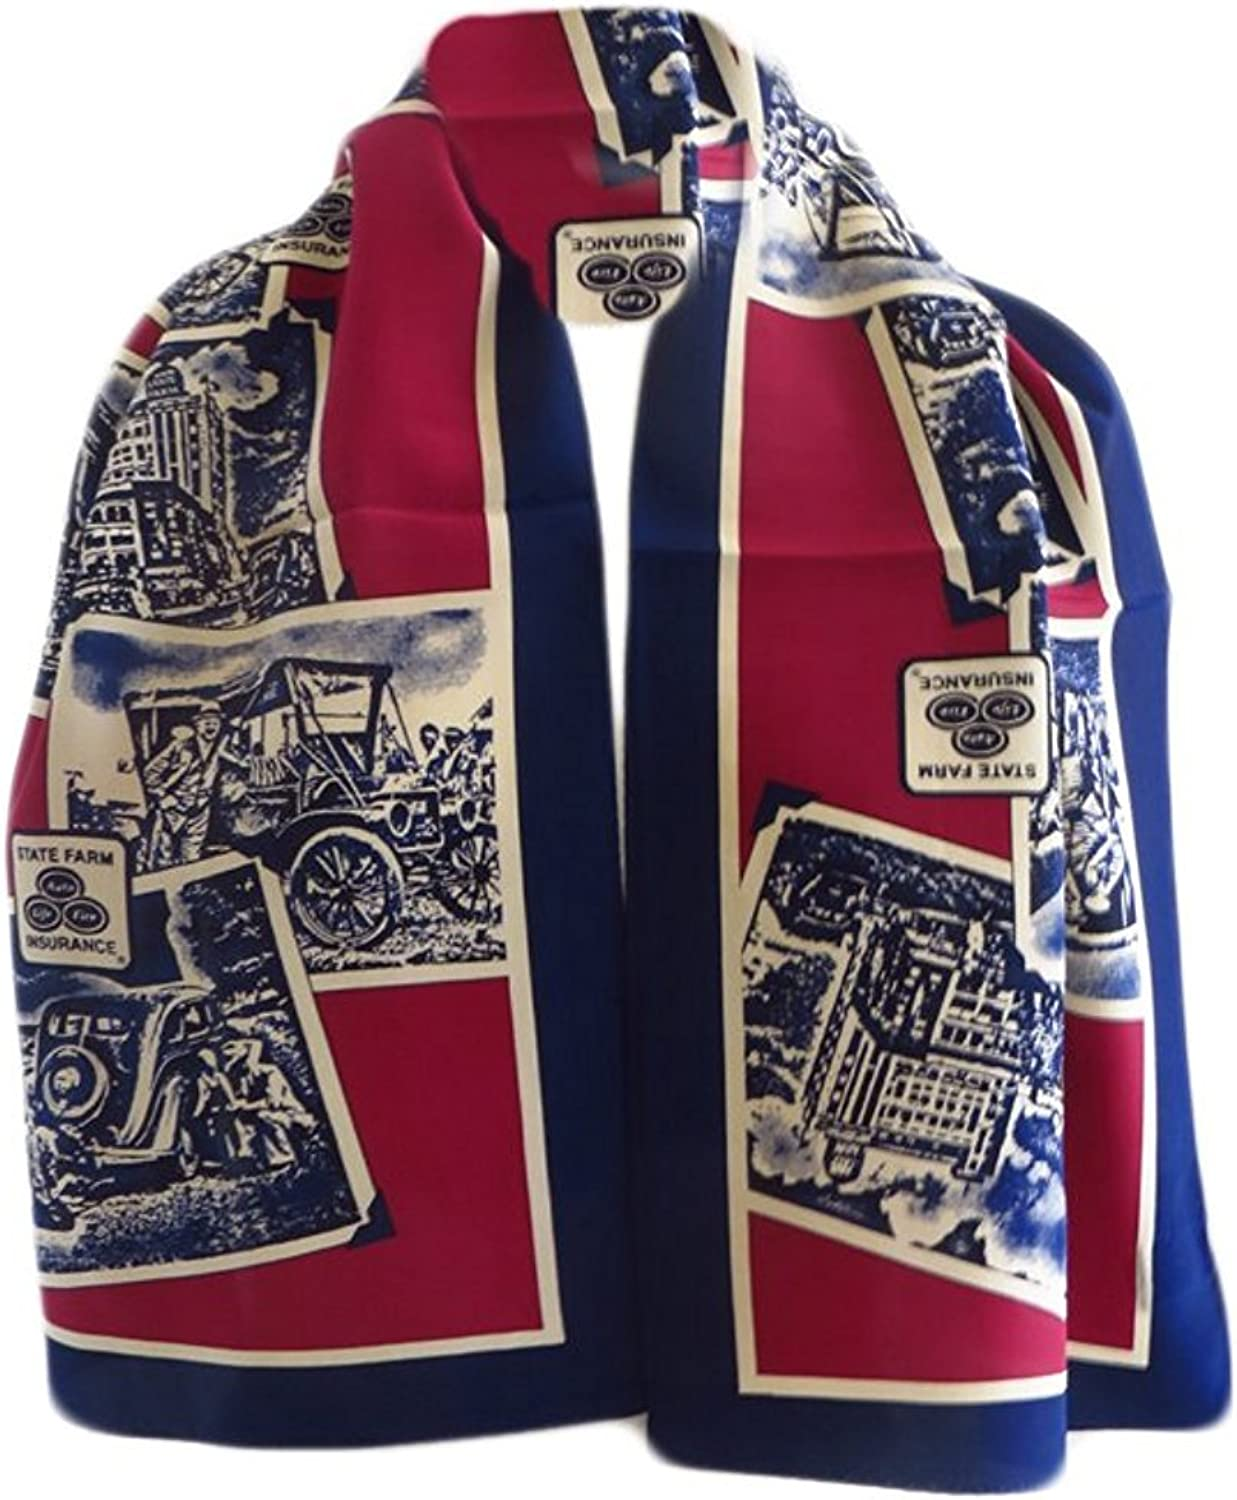 State Farm Womens Insurance Scarf - Blue - One Size